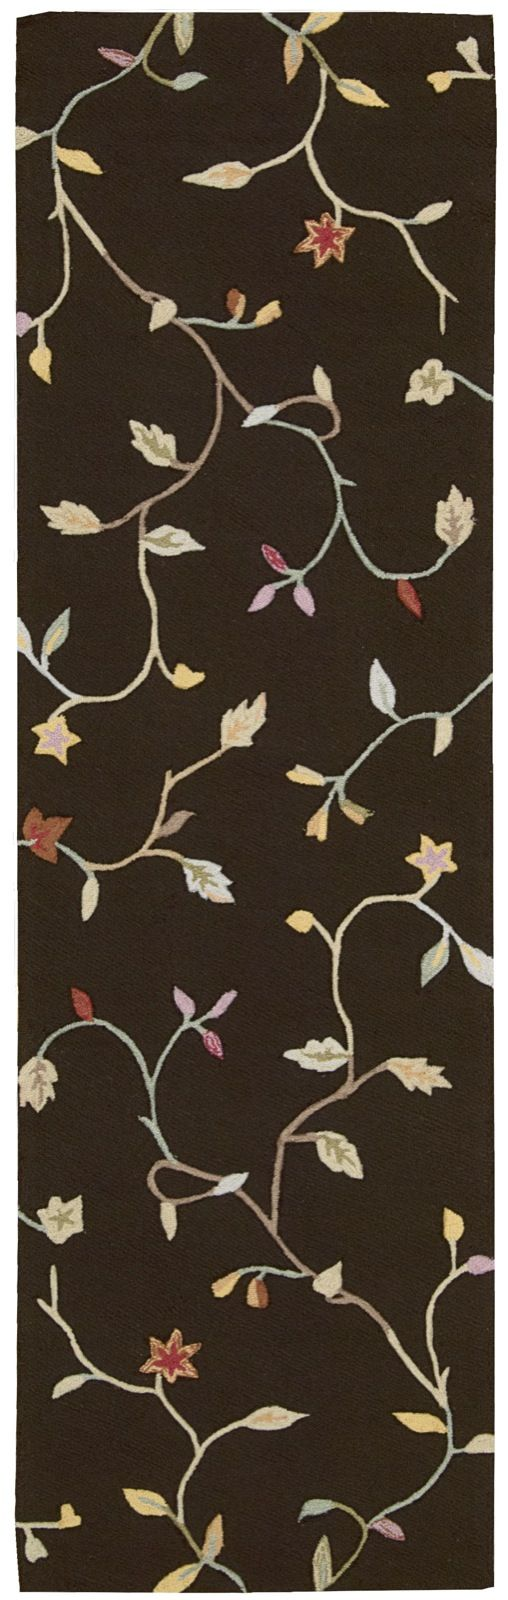 nourison fantasy country & floral area rug collection